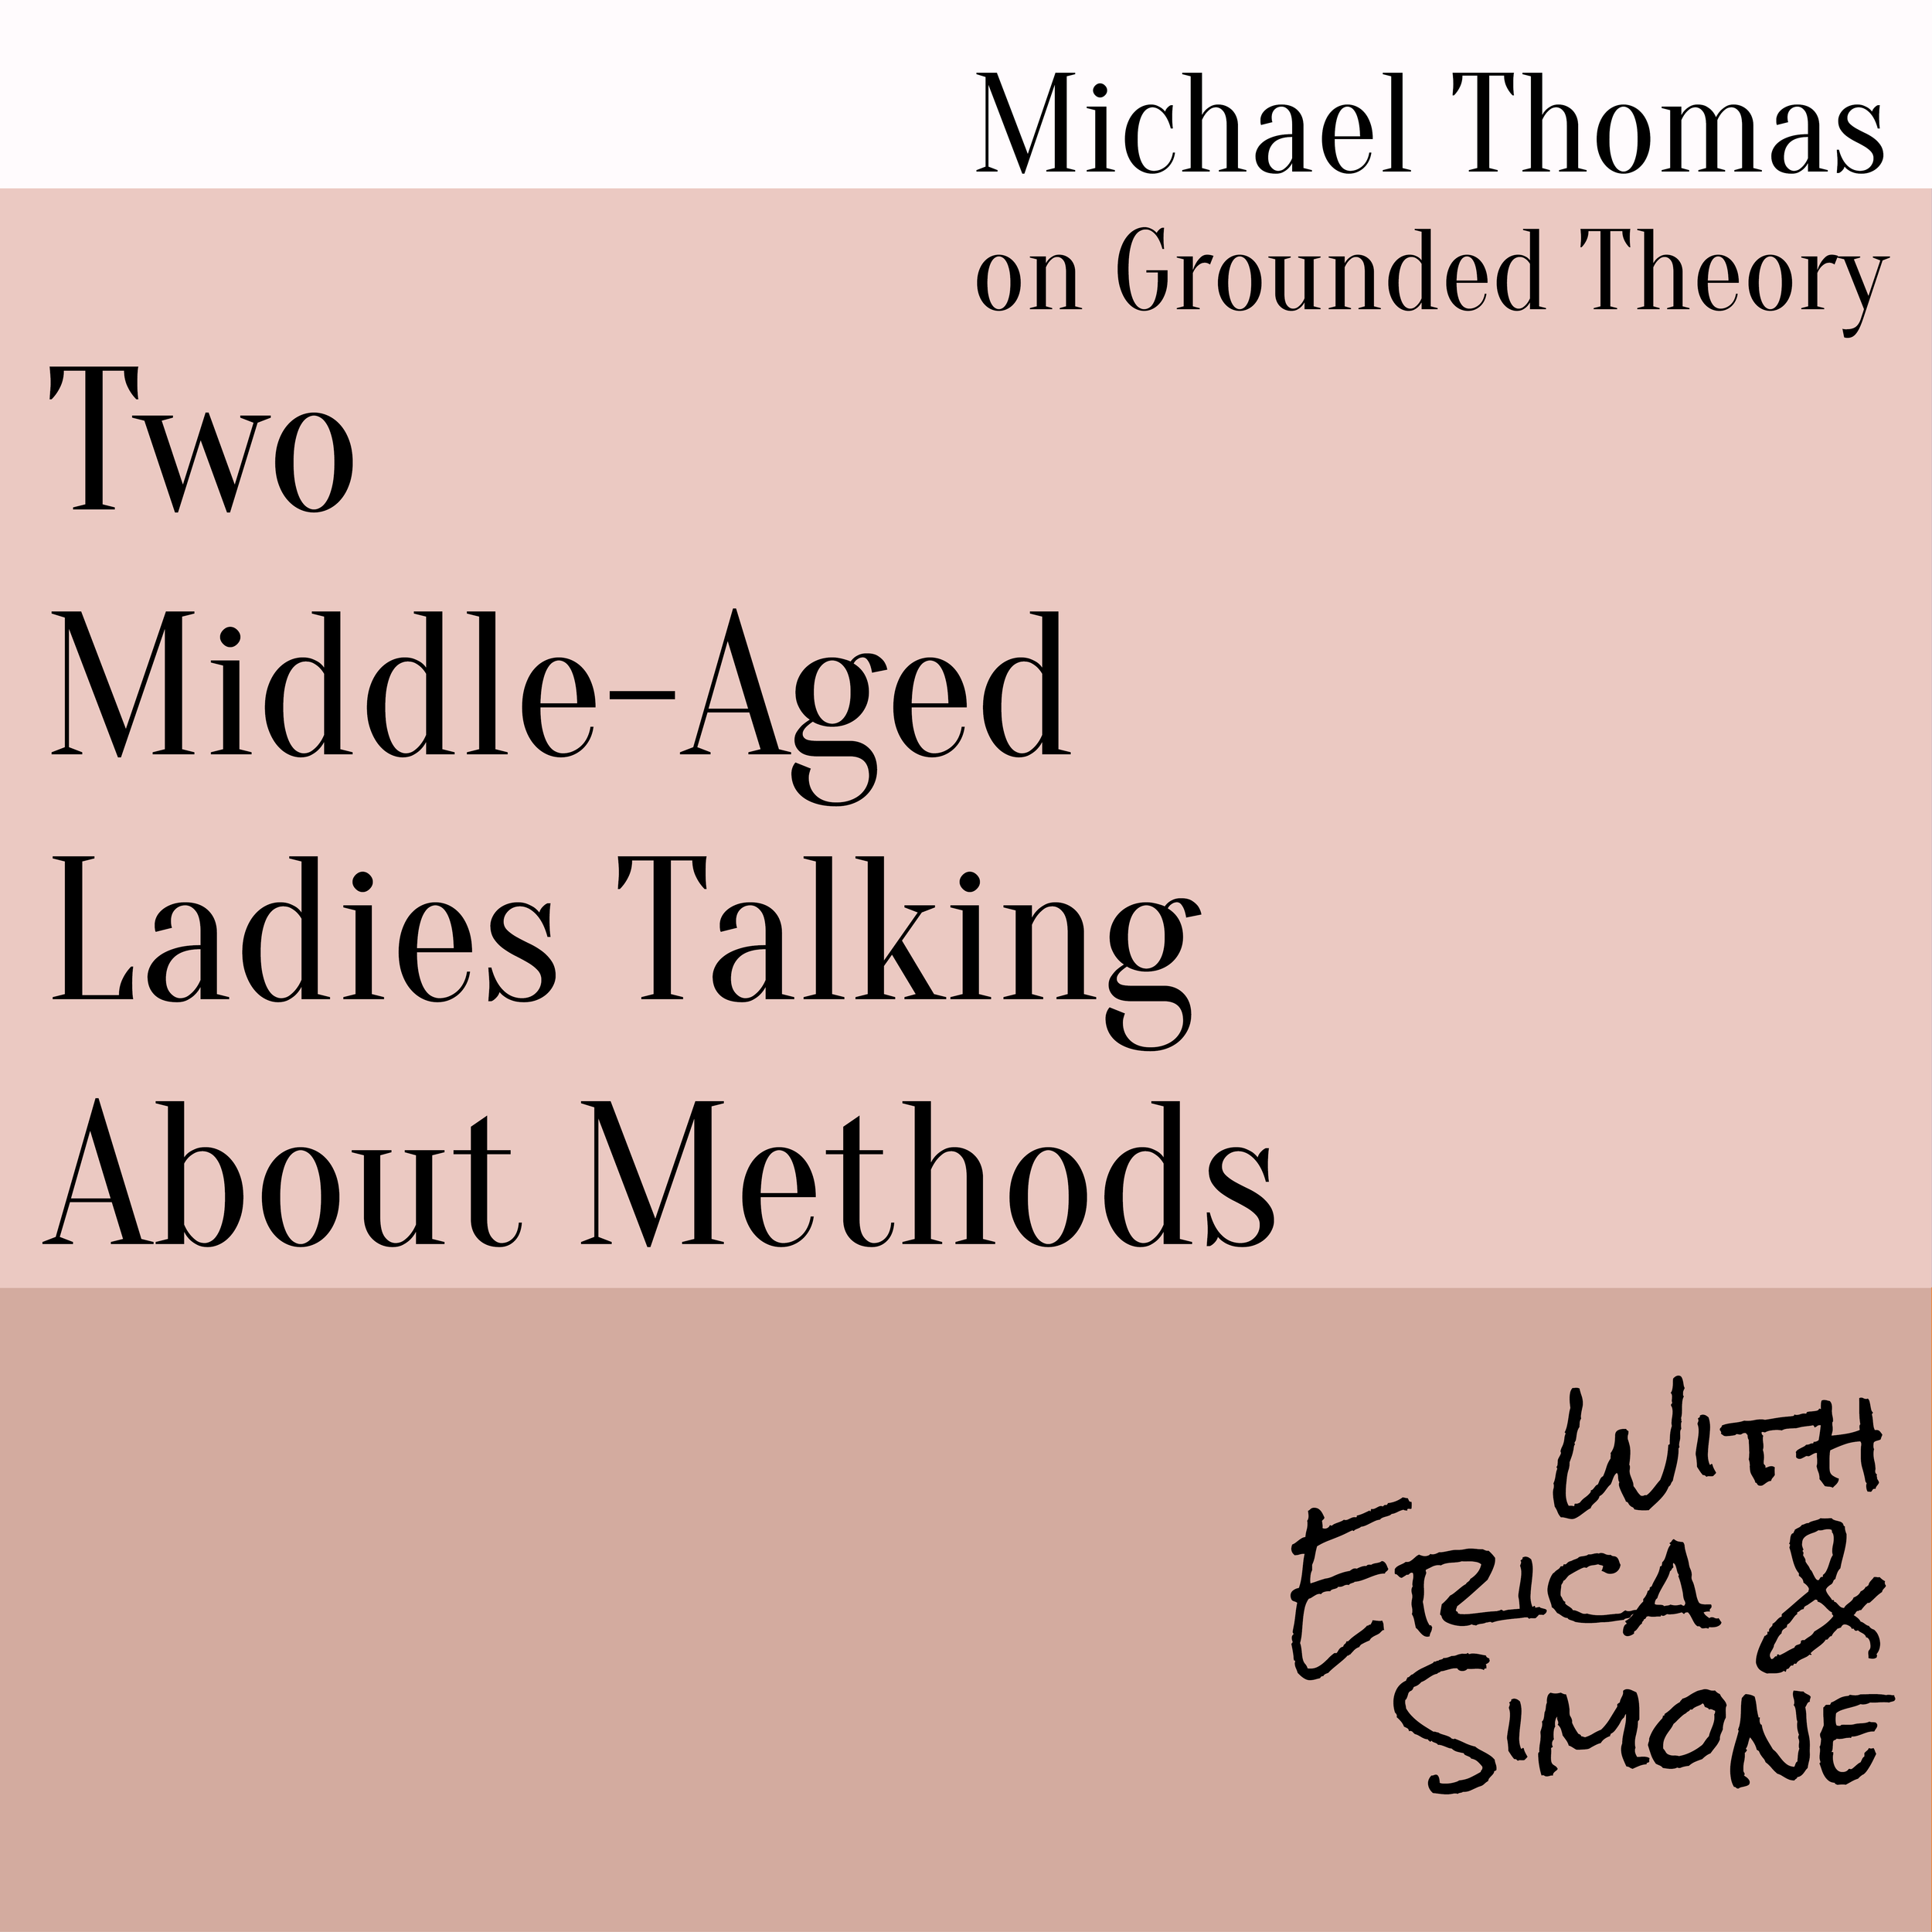 Michael Thomas on Grounded Theory